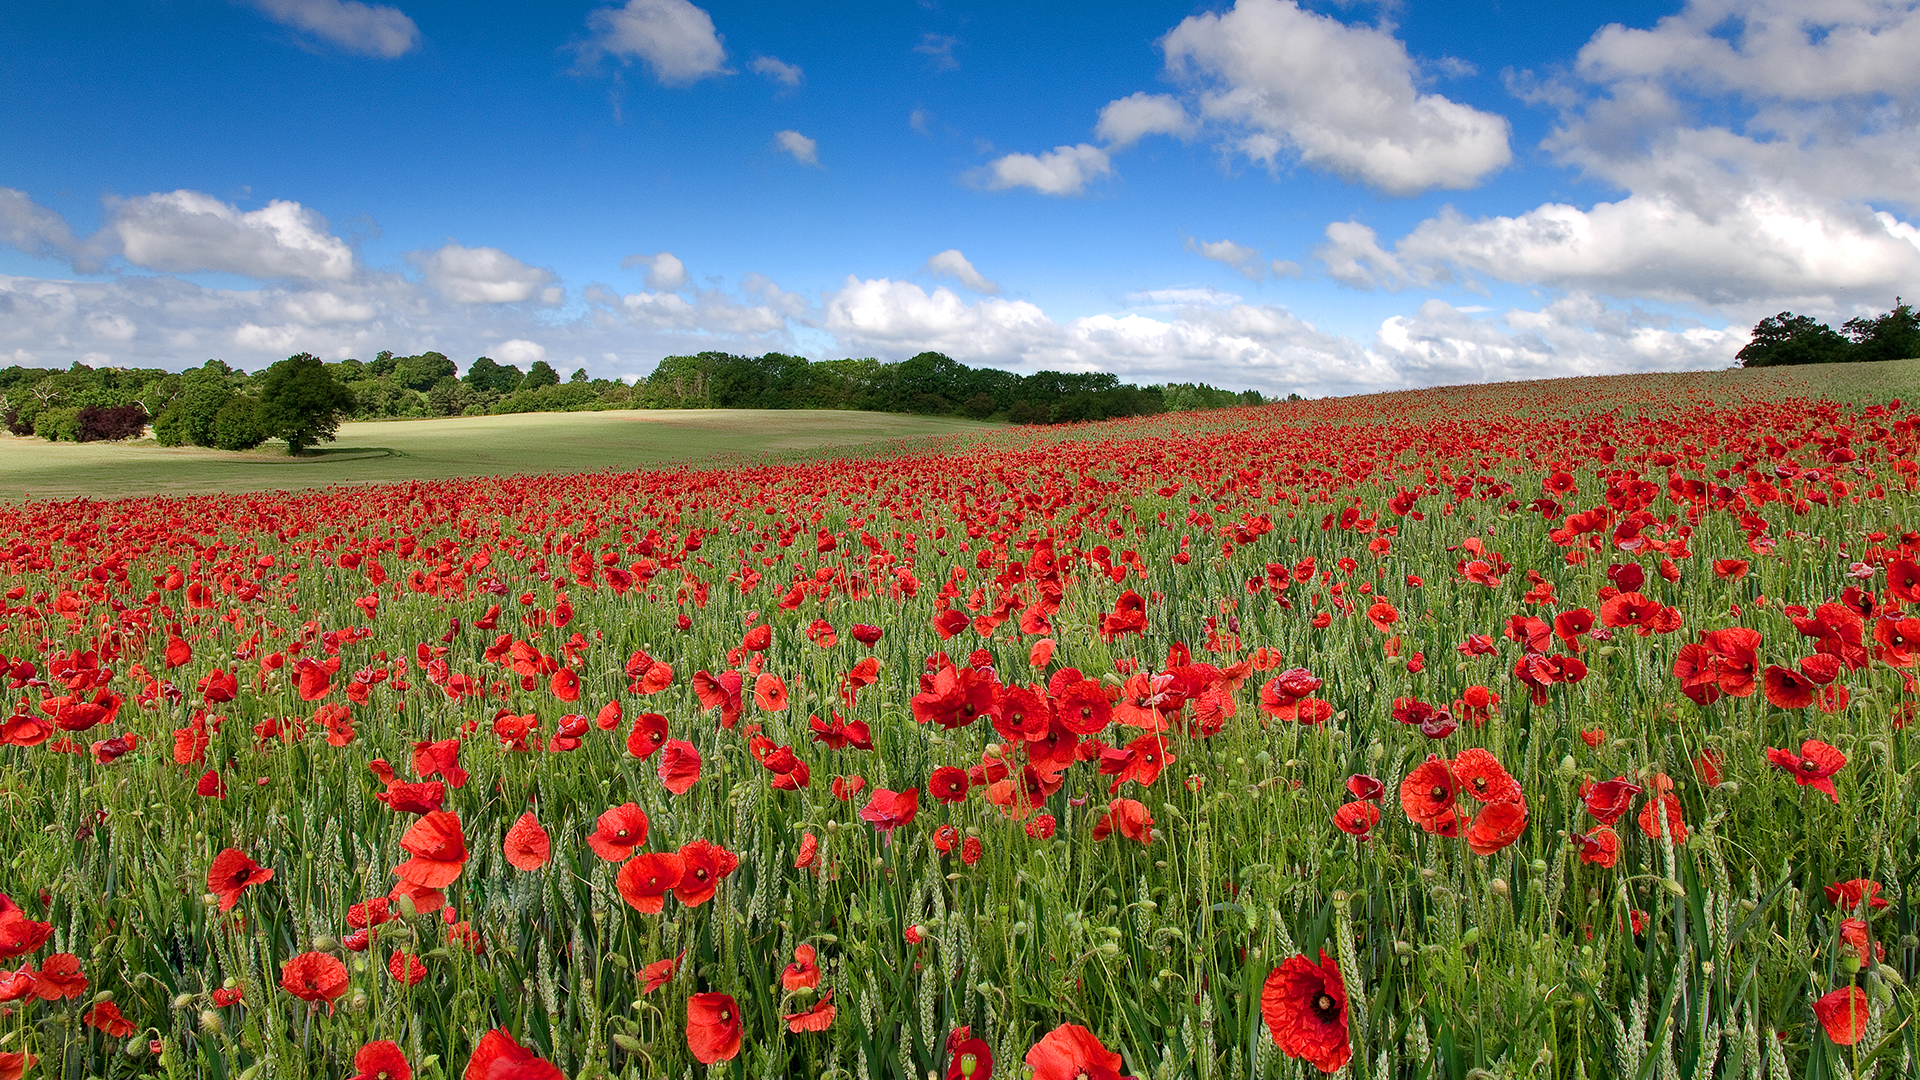 Field-of-remembrance-HD-wallpaper-wp5805633